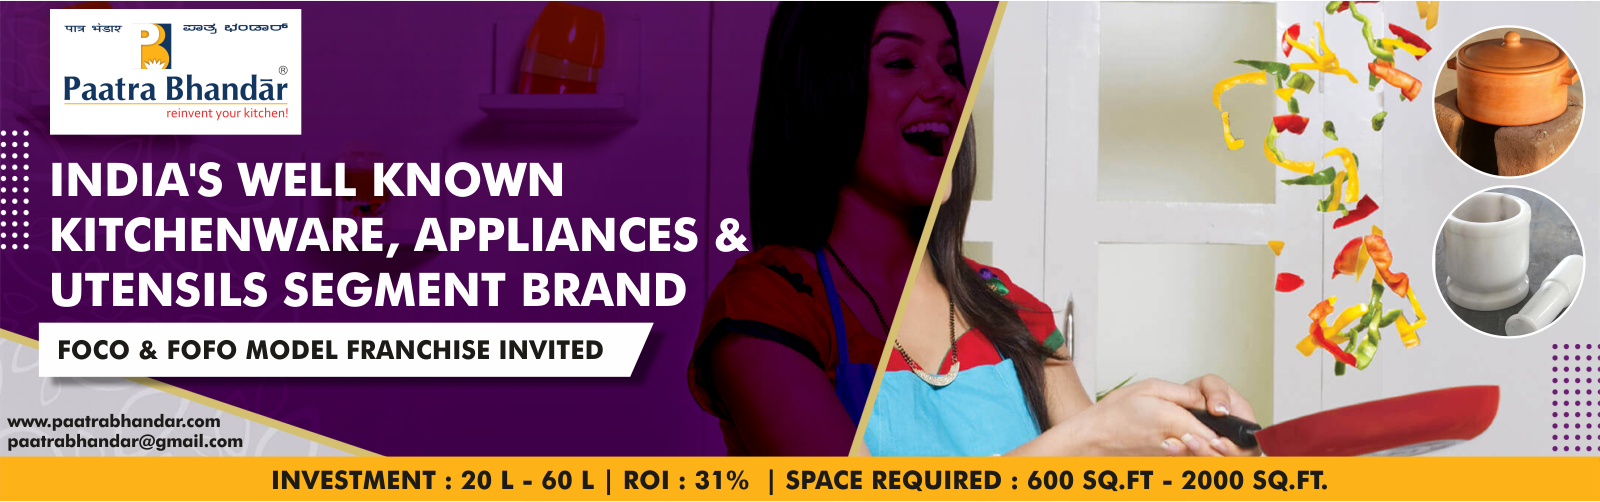 admin/uploads/brand_registration/Paatra Bhandar ( India's Well Known Kitchenware, Appliances & Utensils Segment Brand )